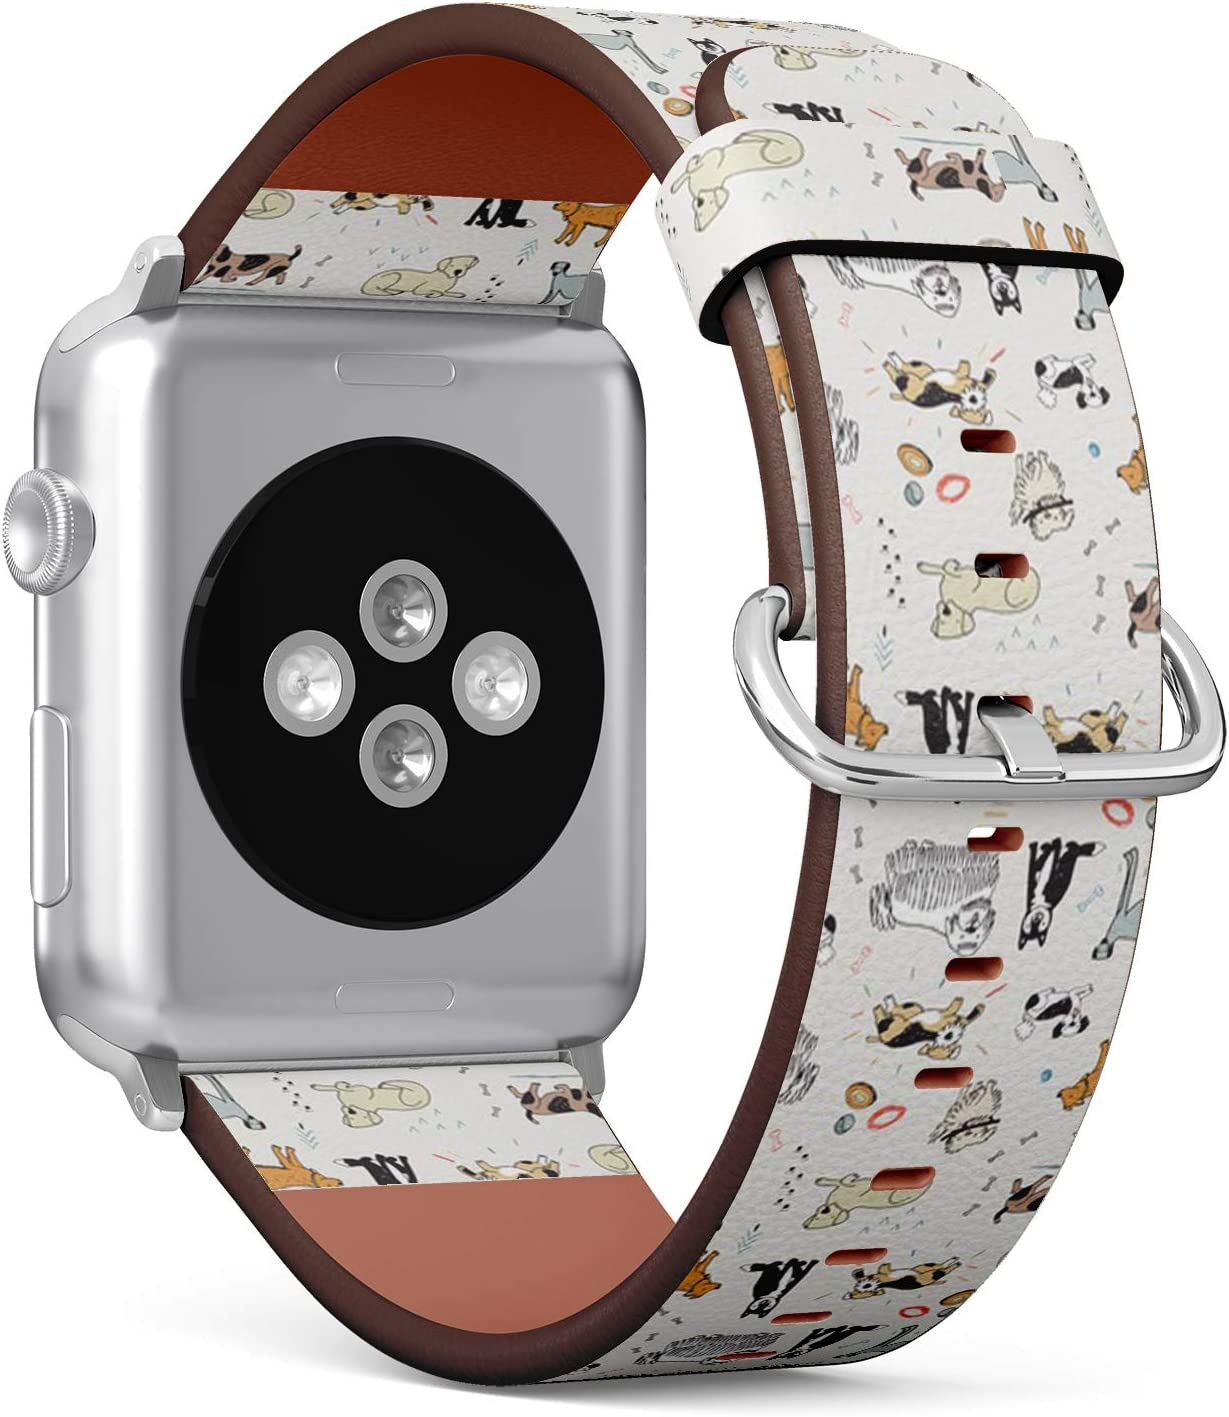 Compatible with Small Apple Watch 38mm & 40mm (Series 5, 4, 3, 2, 1) Leather Watch Wrist Band Strap Bracelet with Stainless Steel Clasp and Adapters (Different Doodle Dogs)